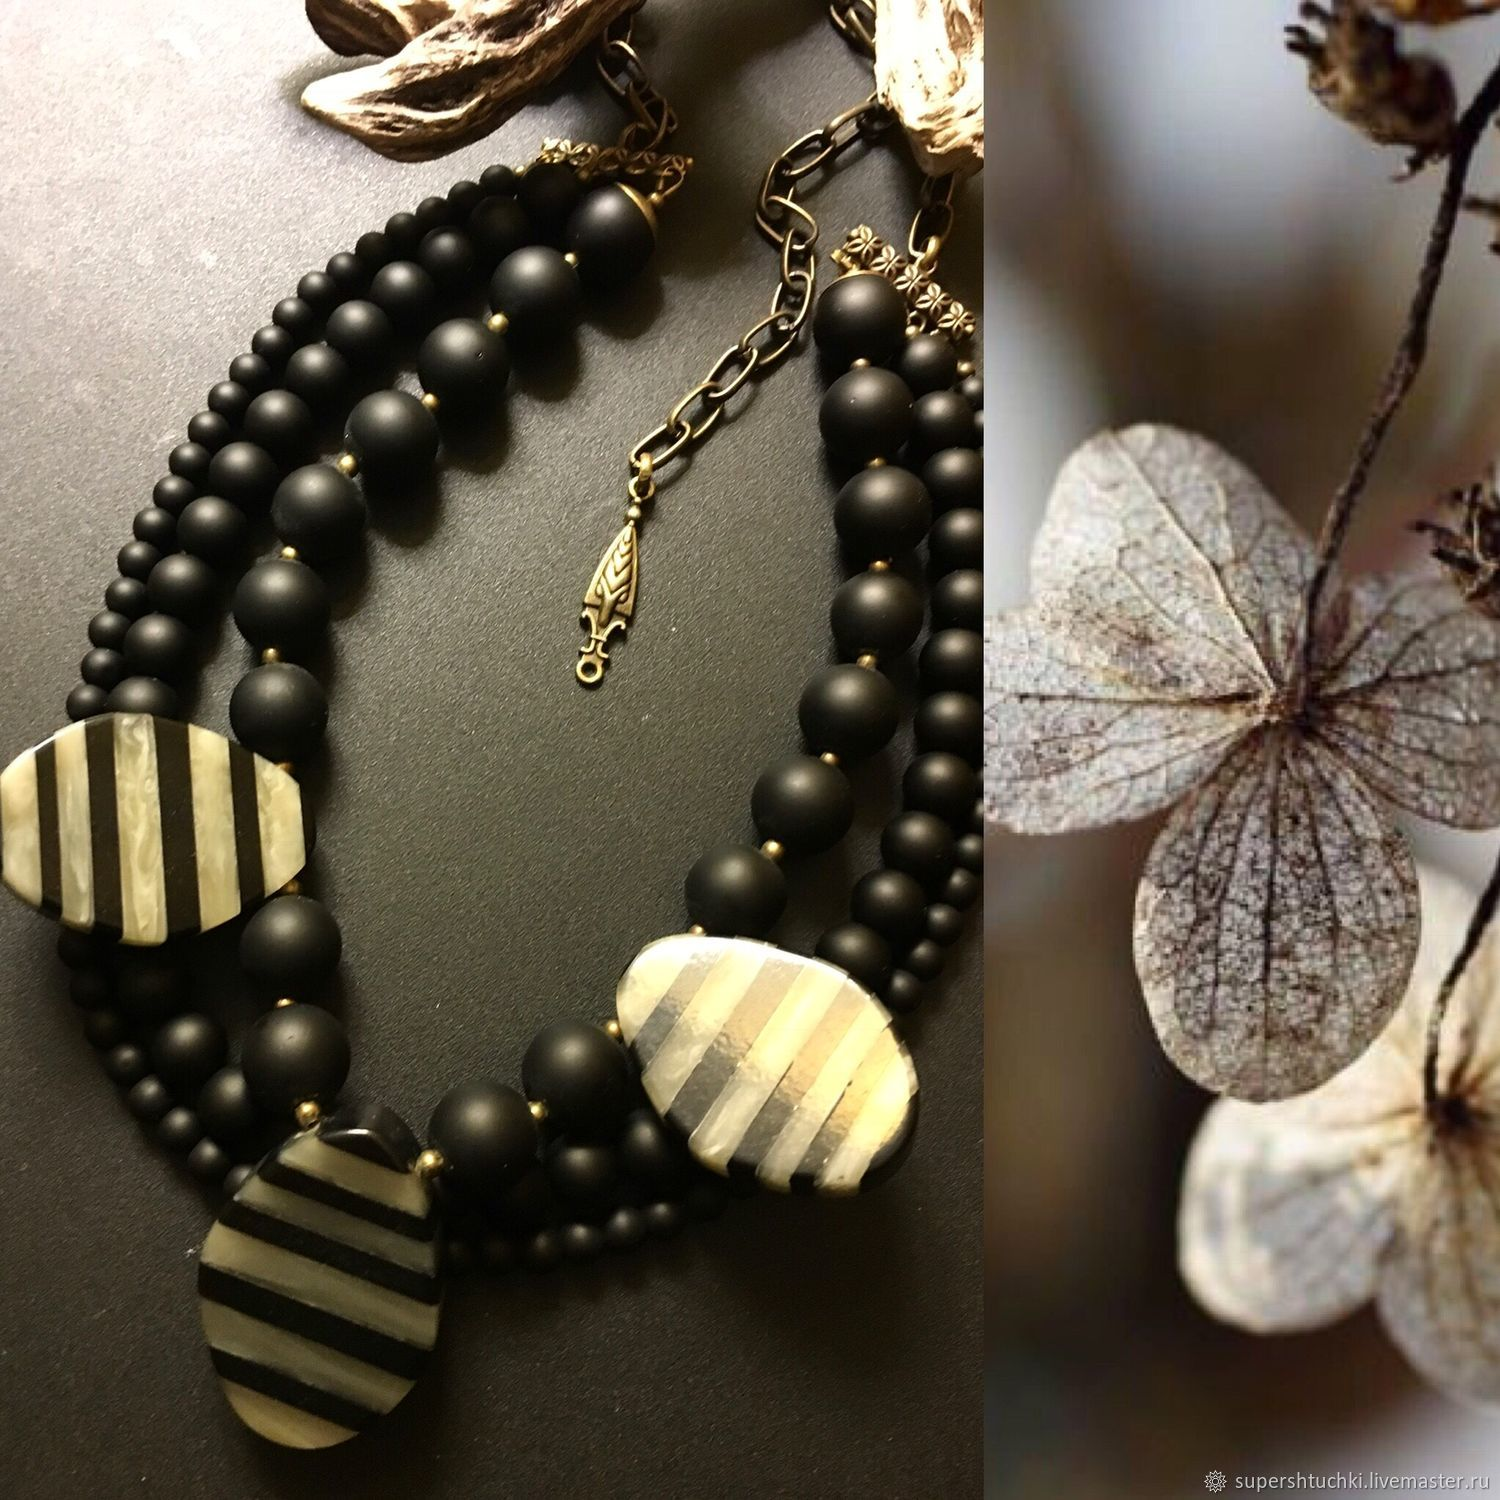 Necklace 'Dublin' with agate, Necklace, St. Petersburg,  Фото №1